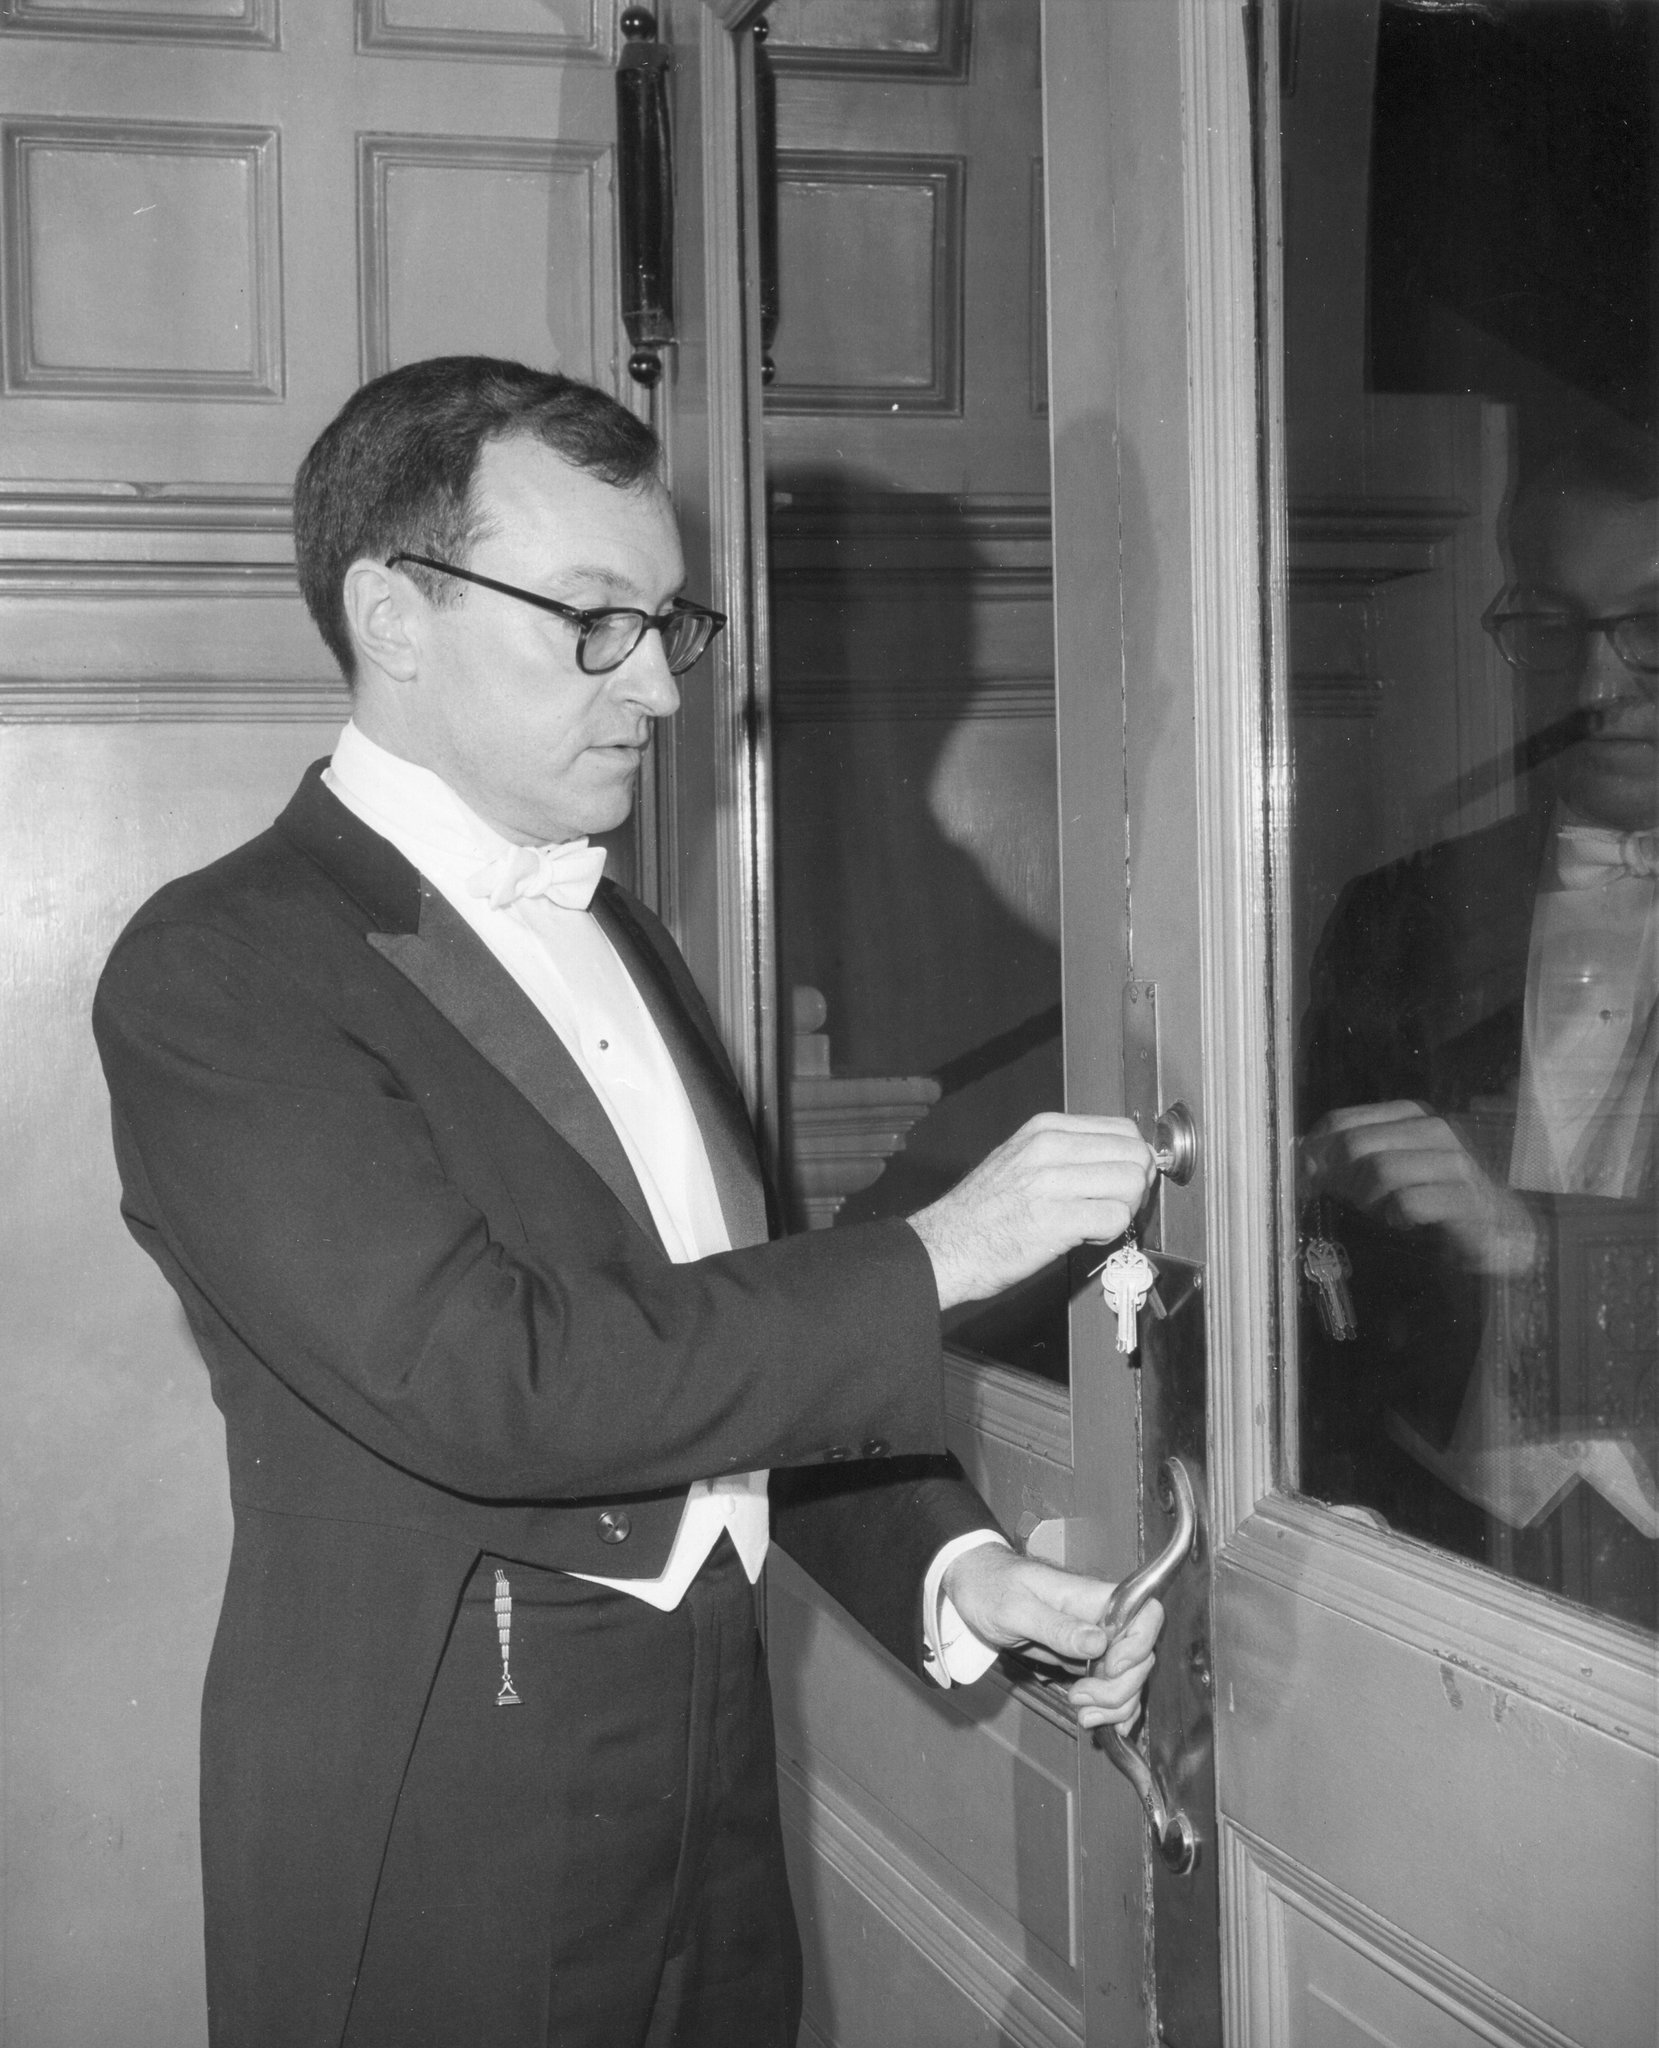 Mr. Hubay locking the old Metropolitan Opera, at Broadway and 39th Street, after a farewell gala in 1966. The company moved north to Lincoln Center, and its previous home was torn down.  Credit via The Metropolitan Opera